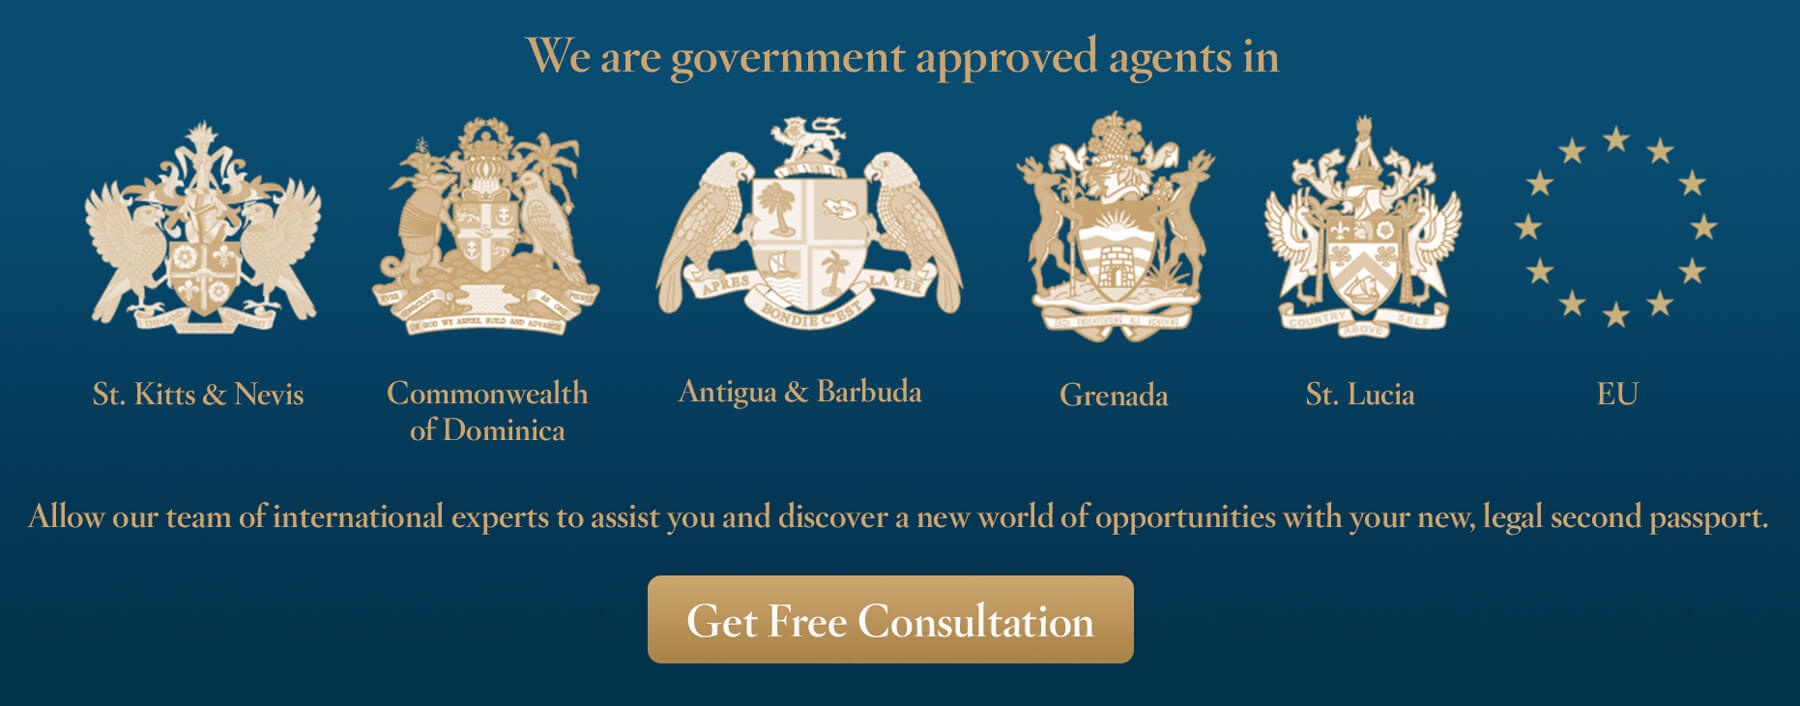 Second Citizenship In 4-6 Months. Apply Today with Government Authorised Agents